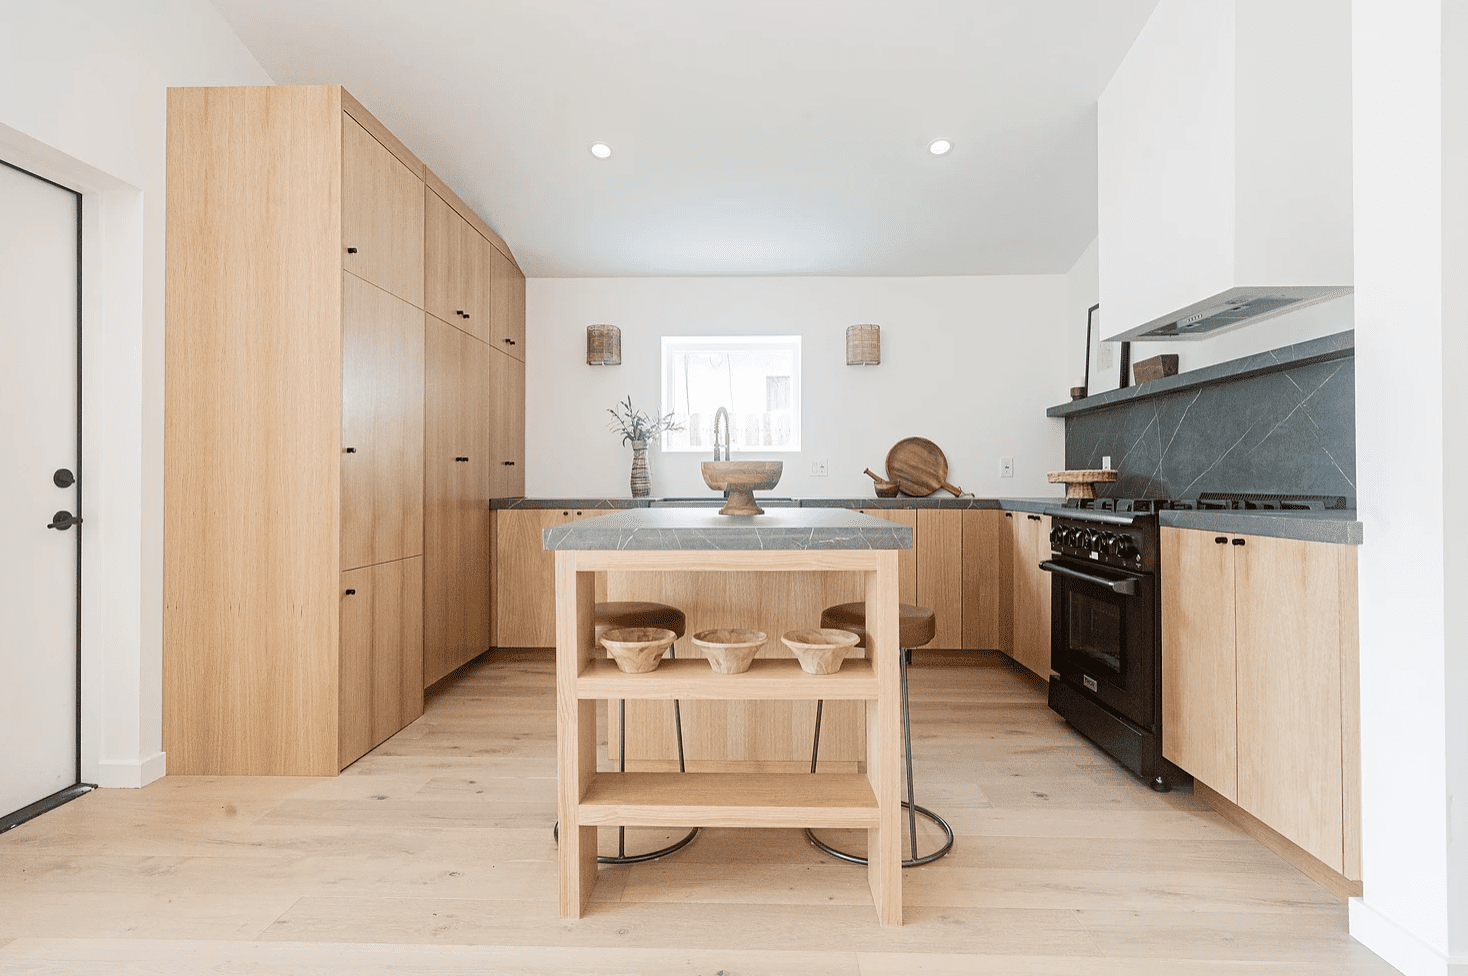 A minimalist kitchen with light wood cabinetry